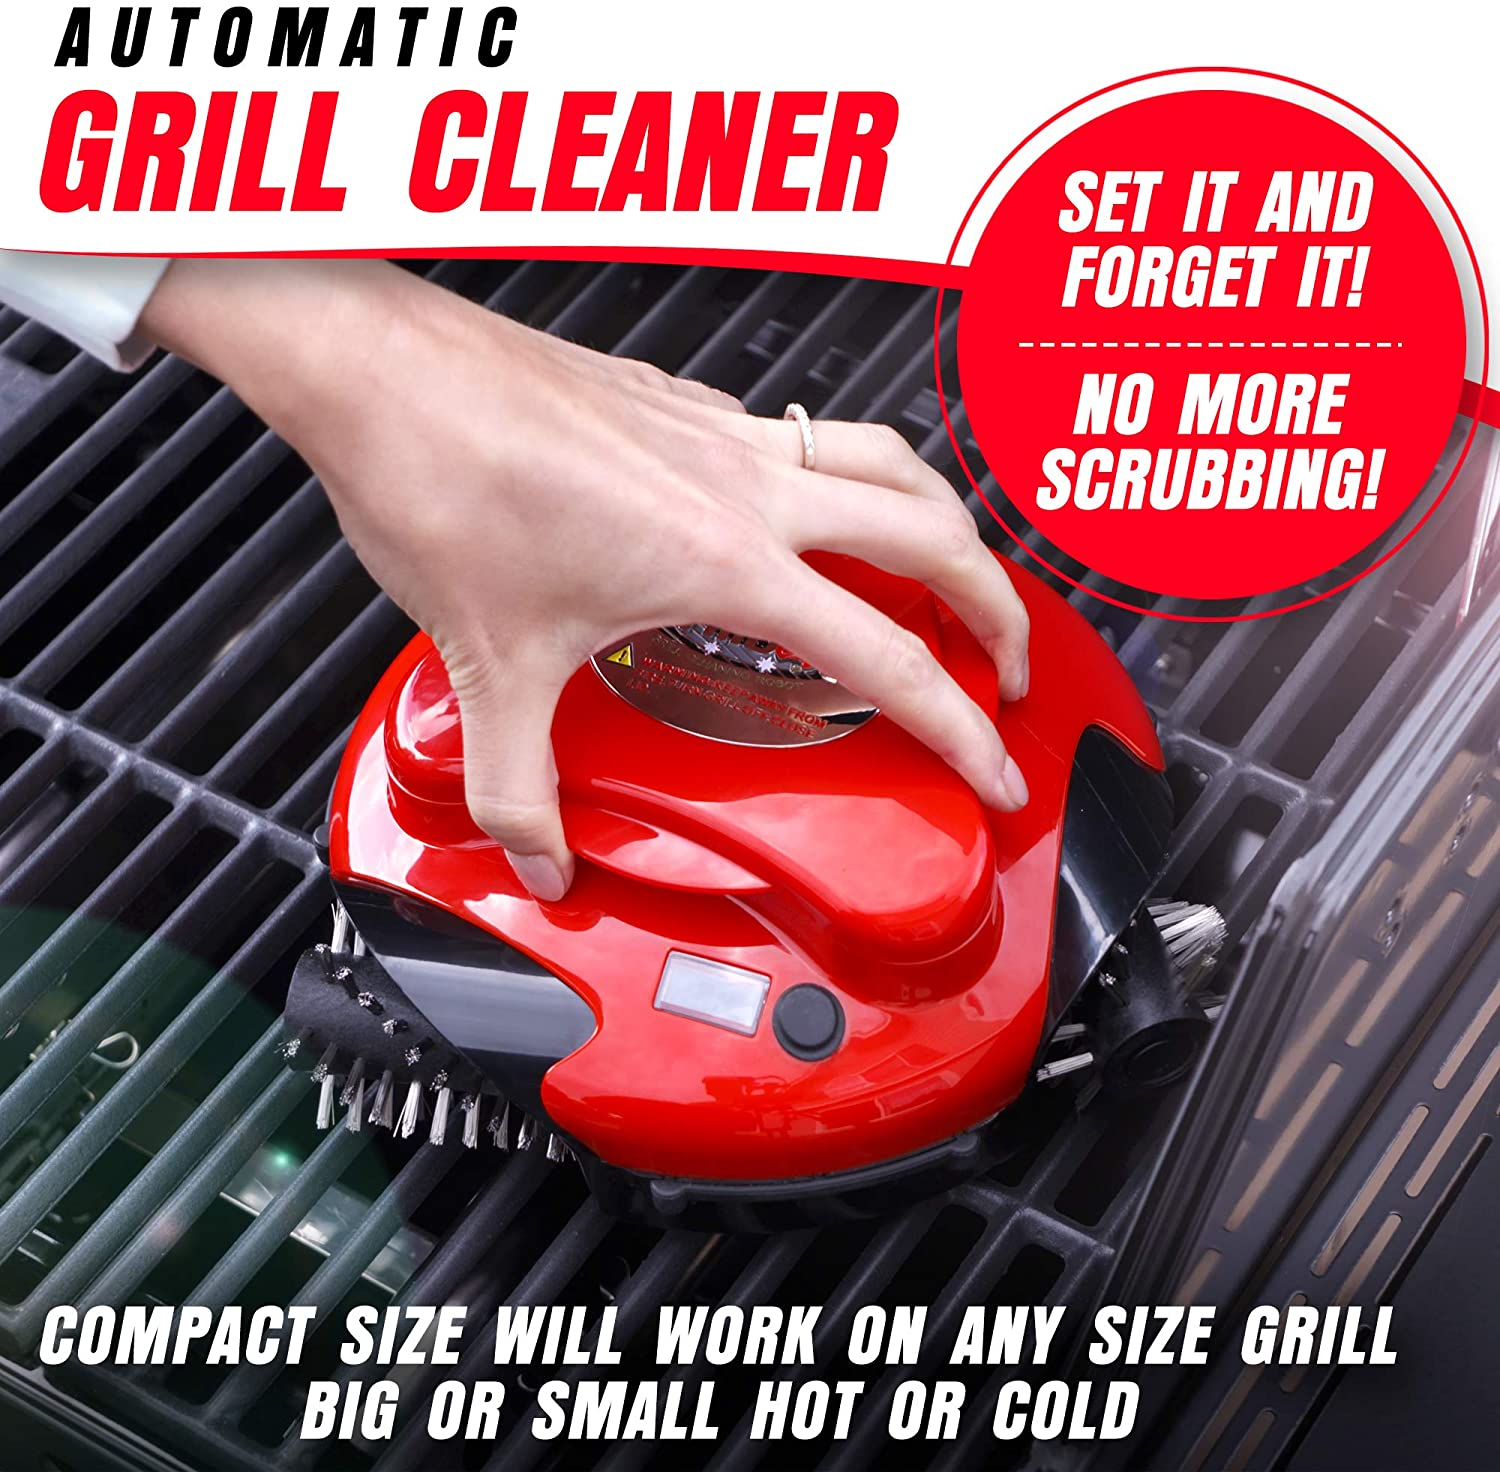 Grillbot-Automatic-Grill-Cleaning-Robot